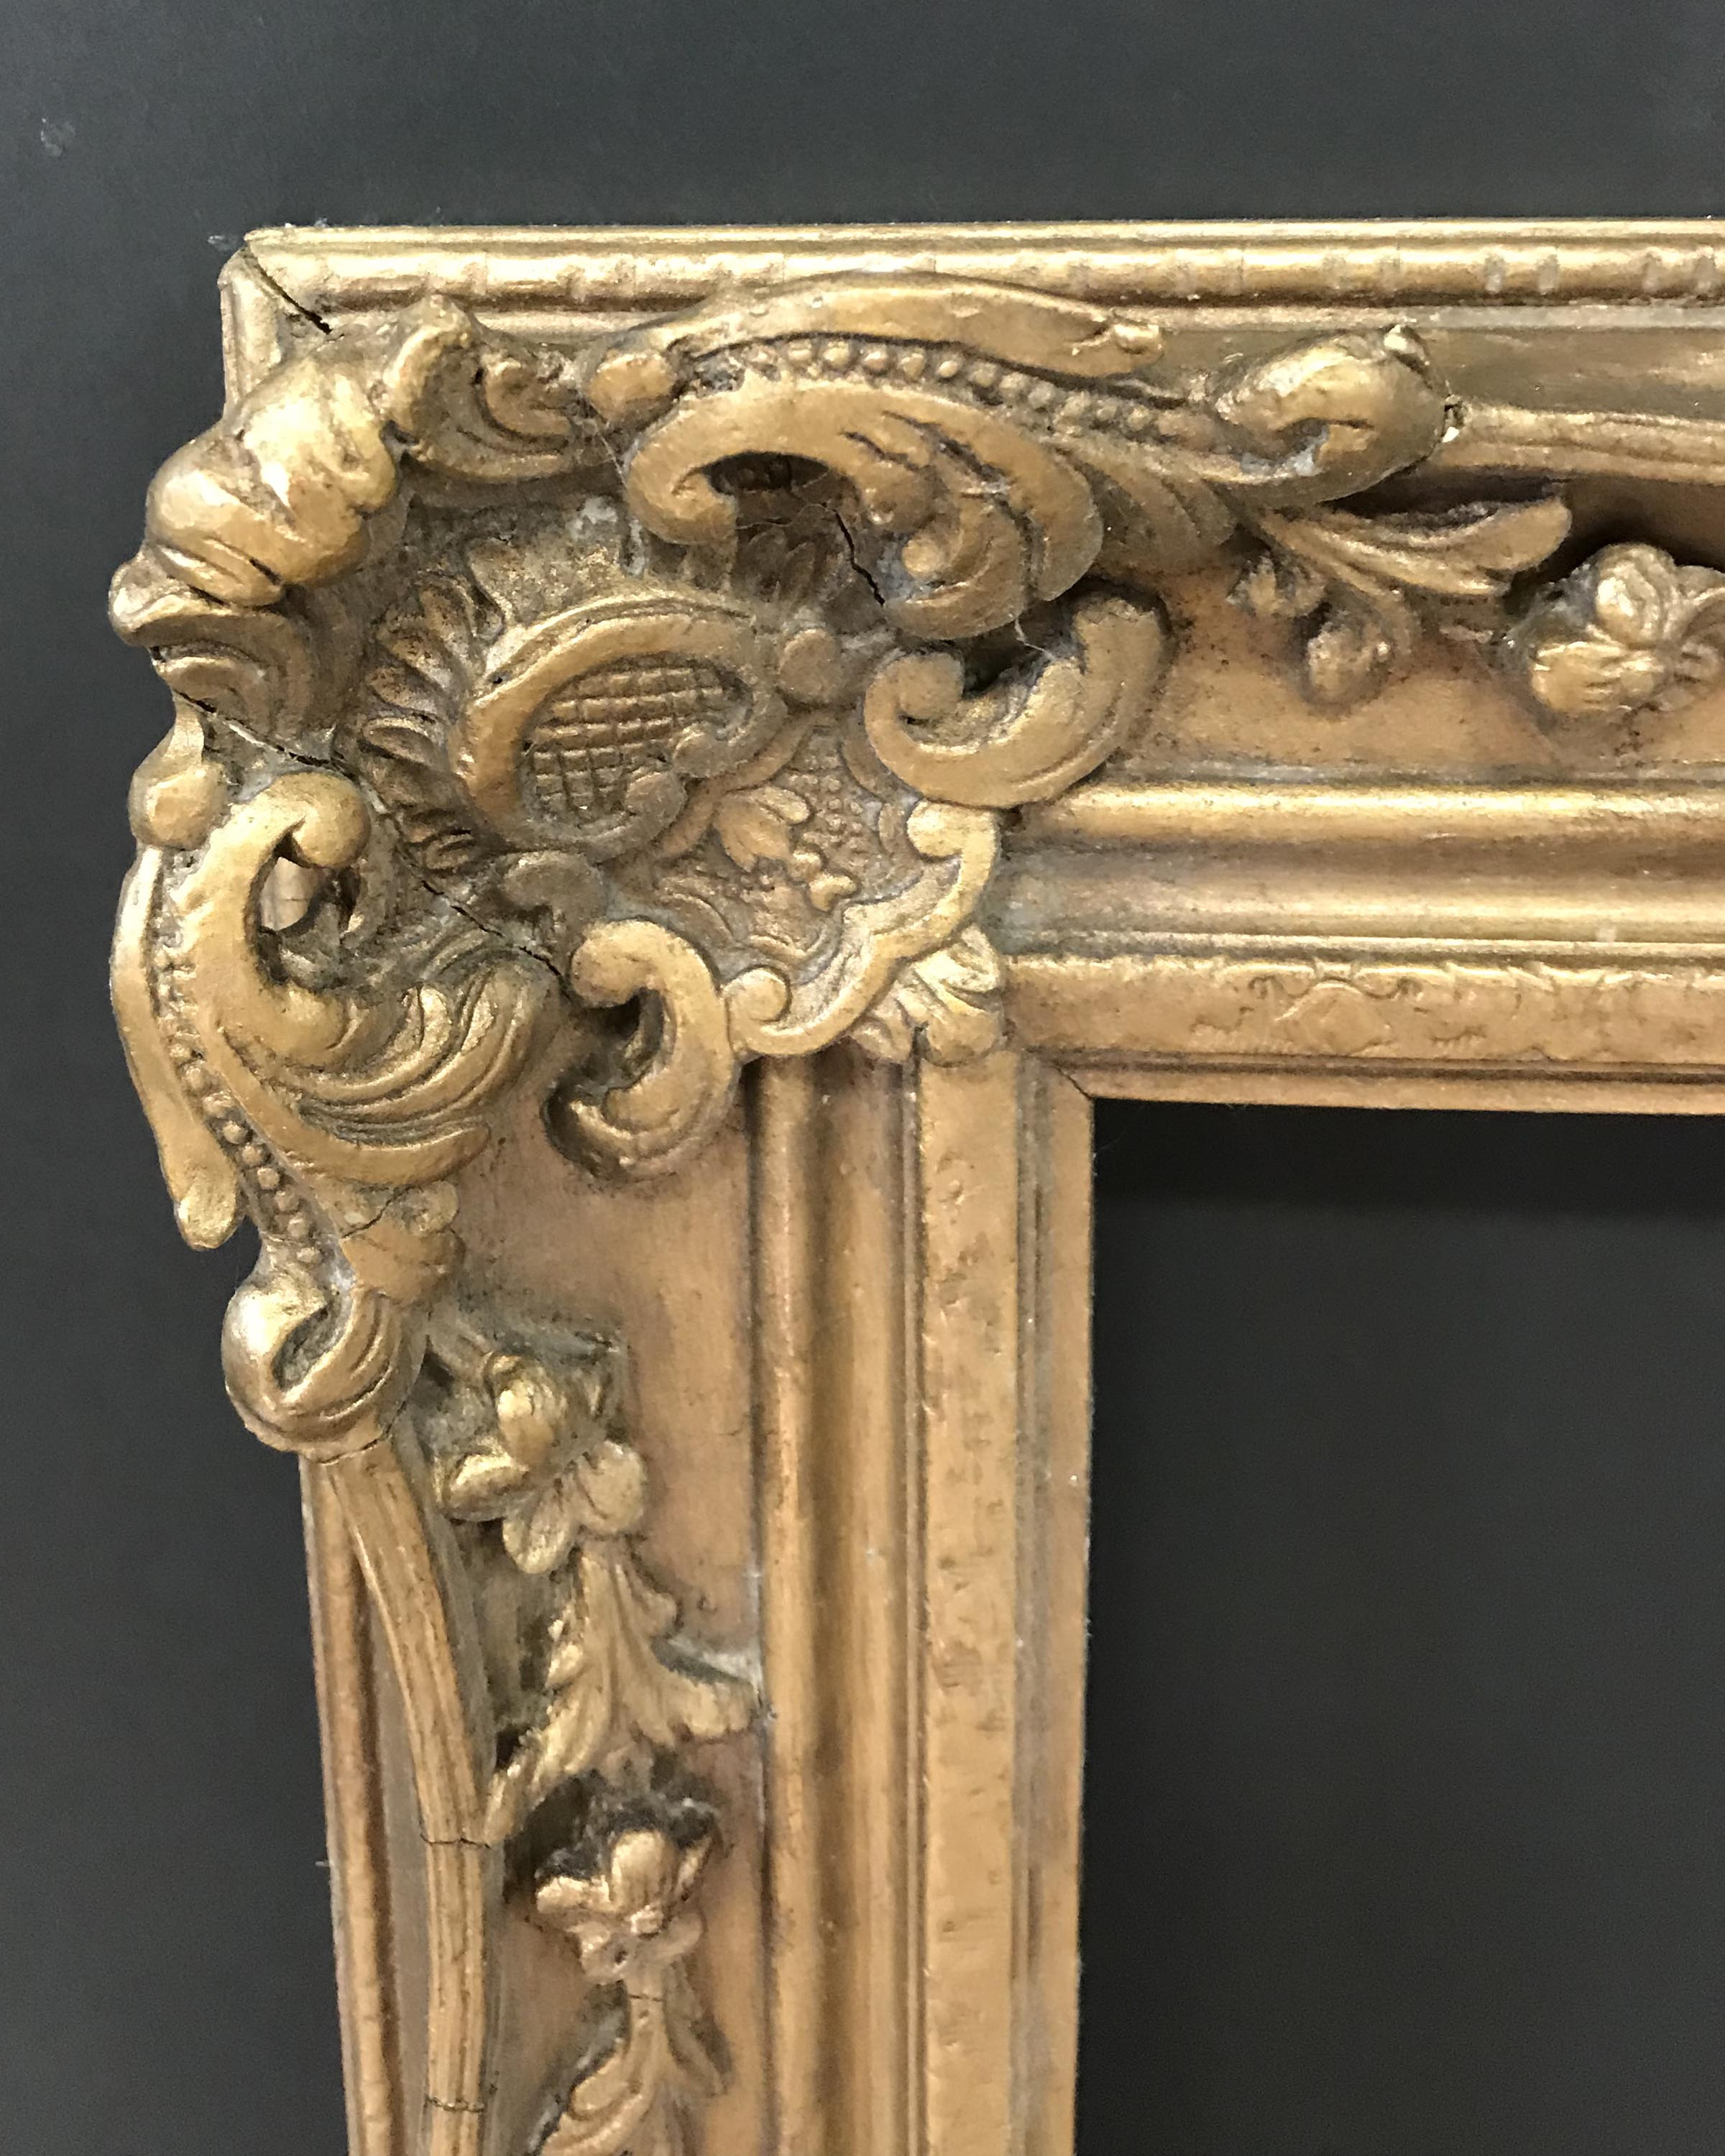 Lot 47 - 20th Century English School. A Gilt Composition Frame, with Swept and Pierced Centres and Corners,